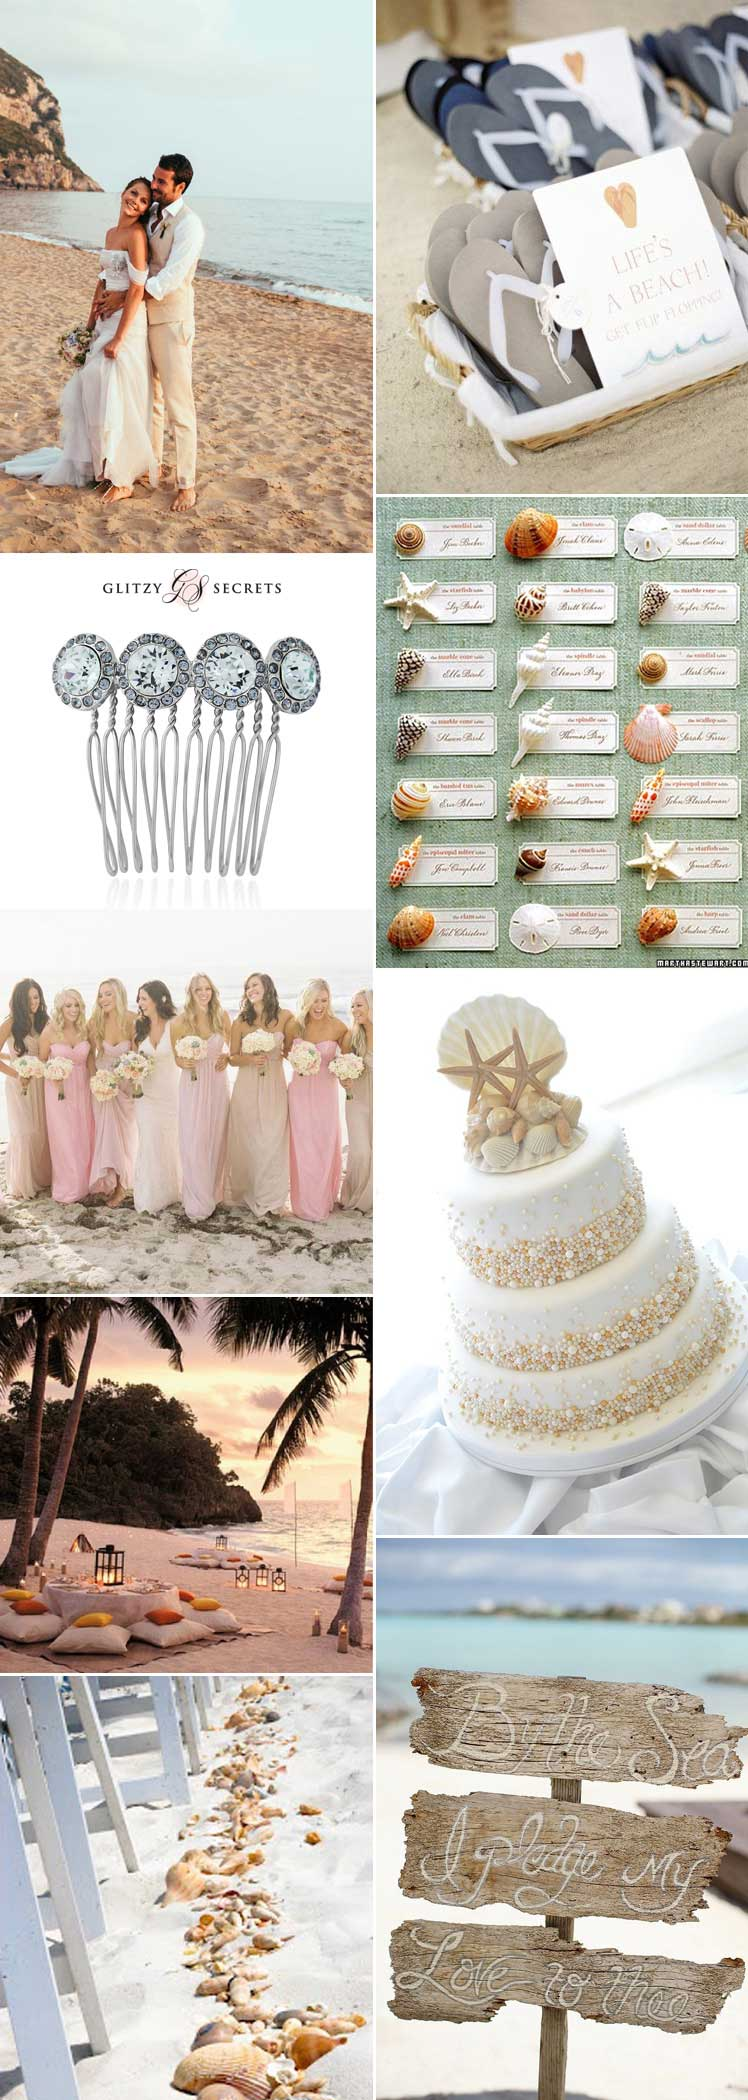 beautiful beach wedding ideas